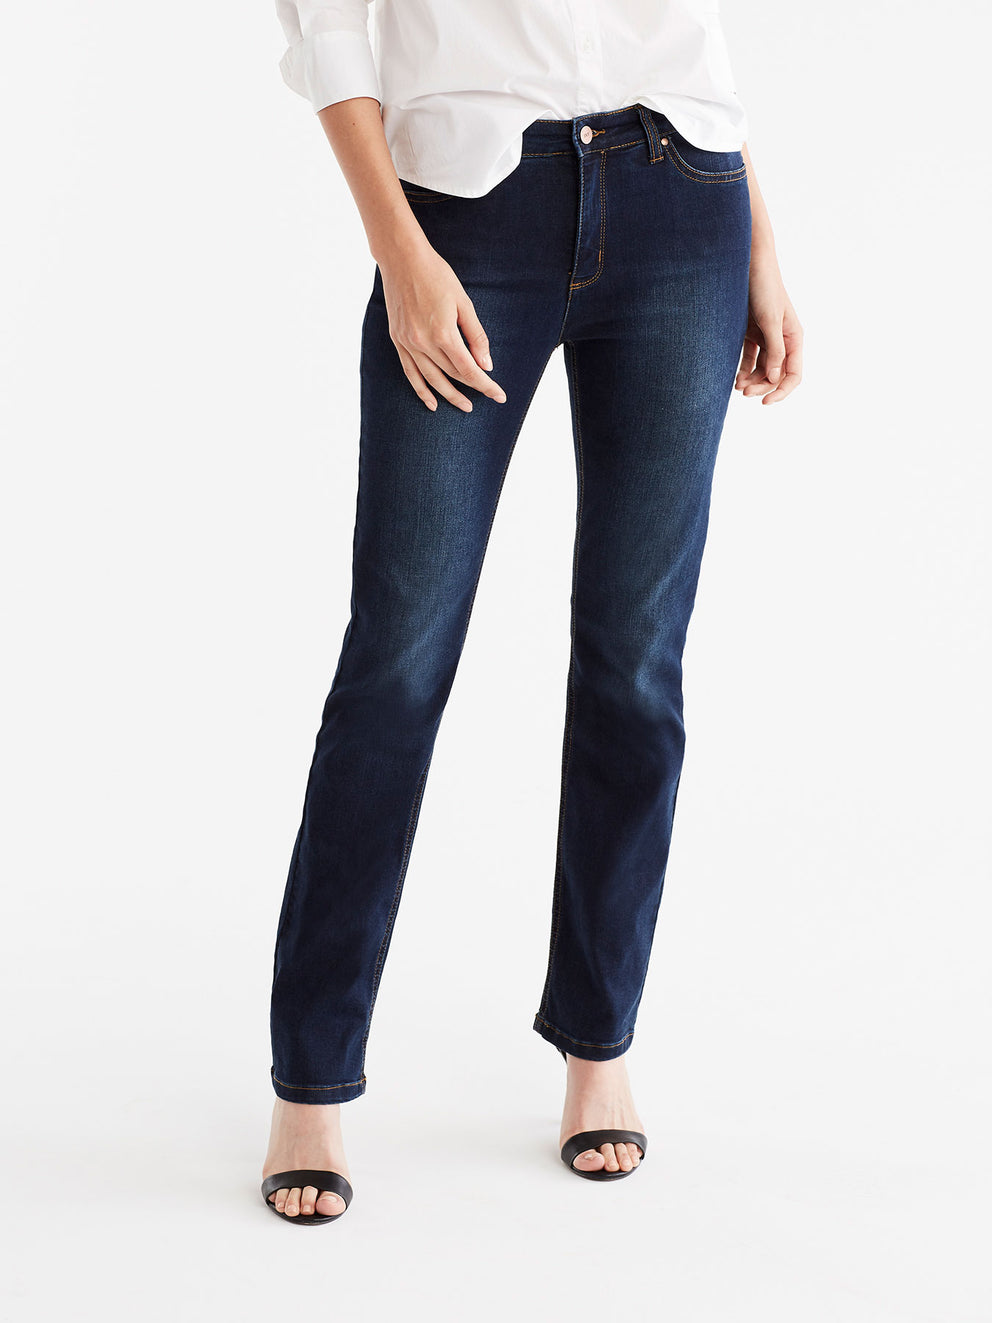 The Jones New York Lexington Indigo Wash Straight Leg Jeans, Plus Size in color Indigo Wash - Image Position 1